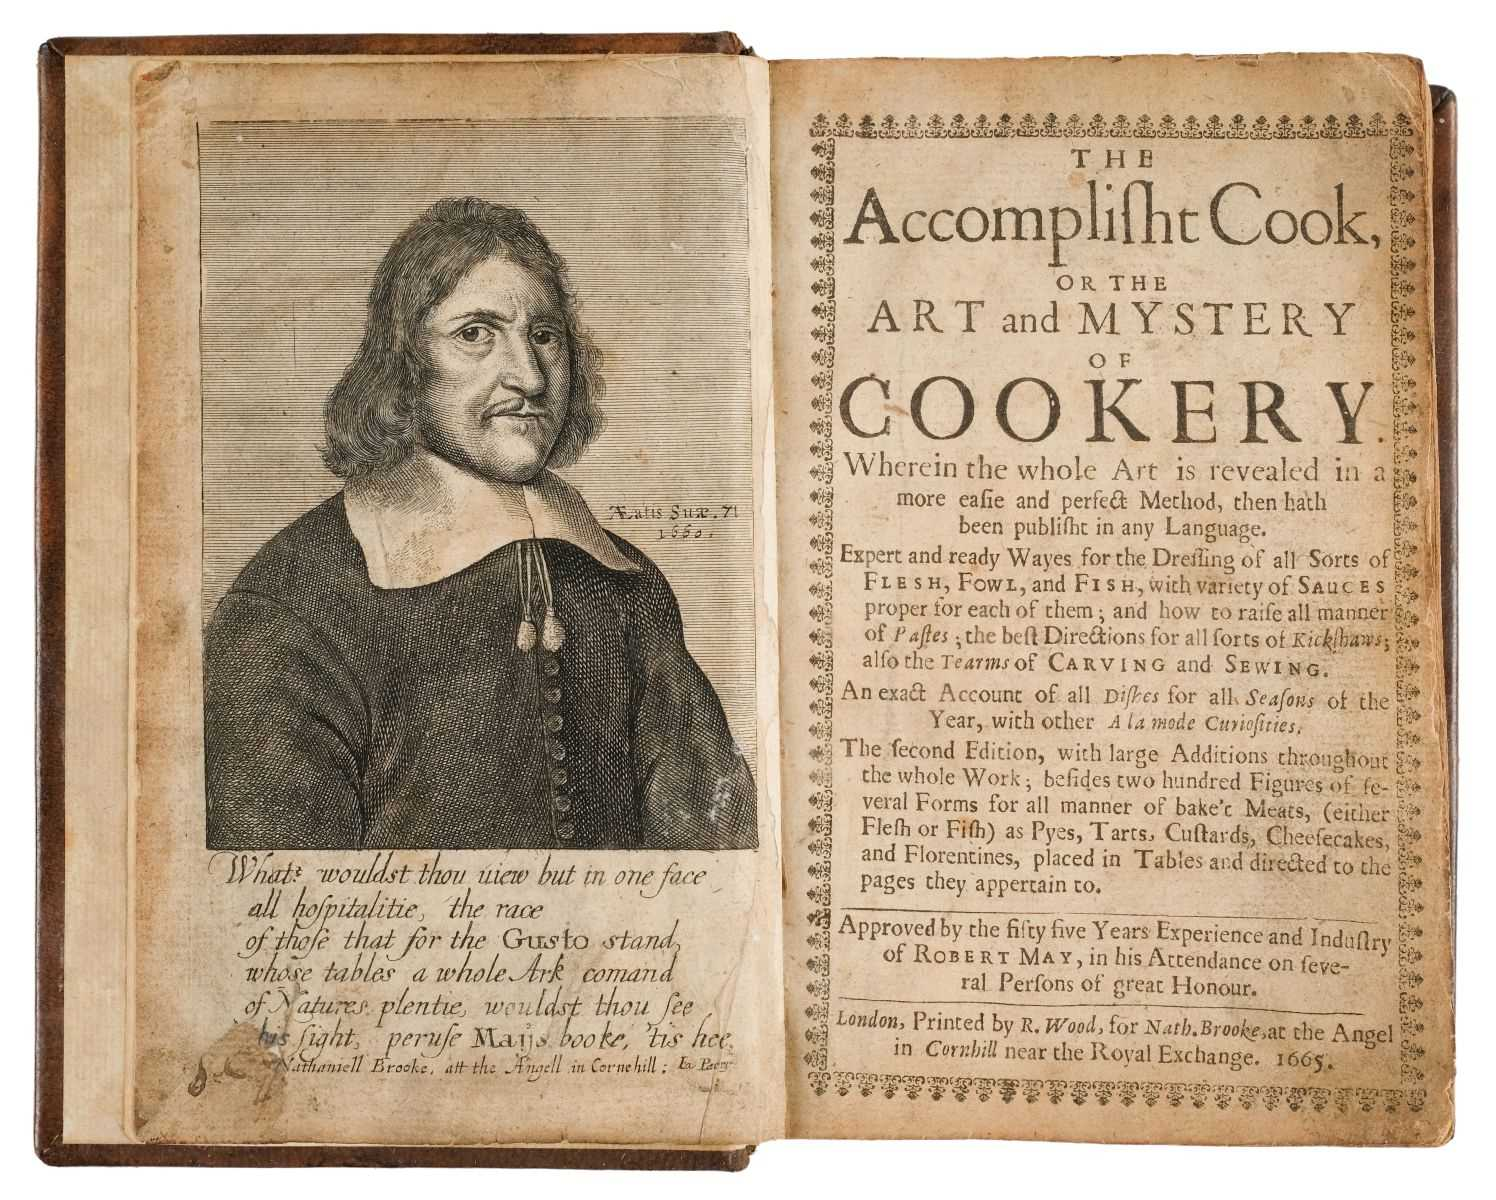 Lot 33-May (Robert). The Accomplisht Cook, or The Art and Mystery of Cookery, 1665